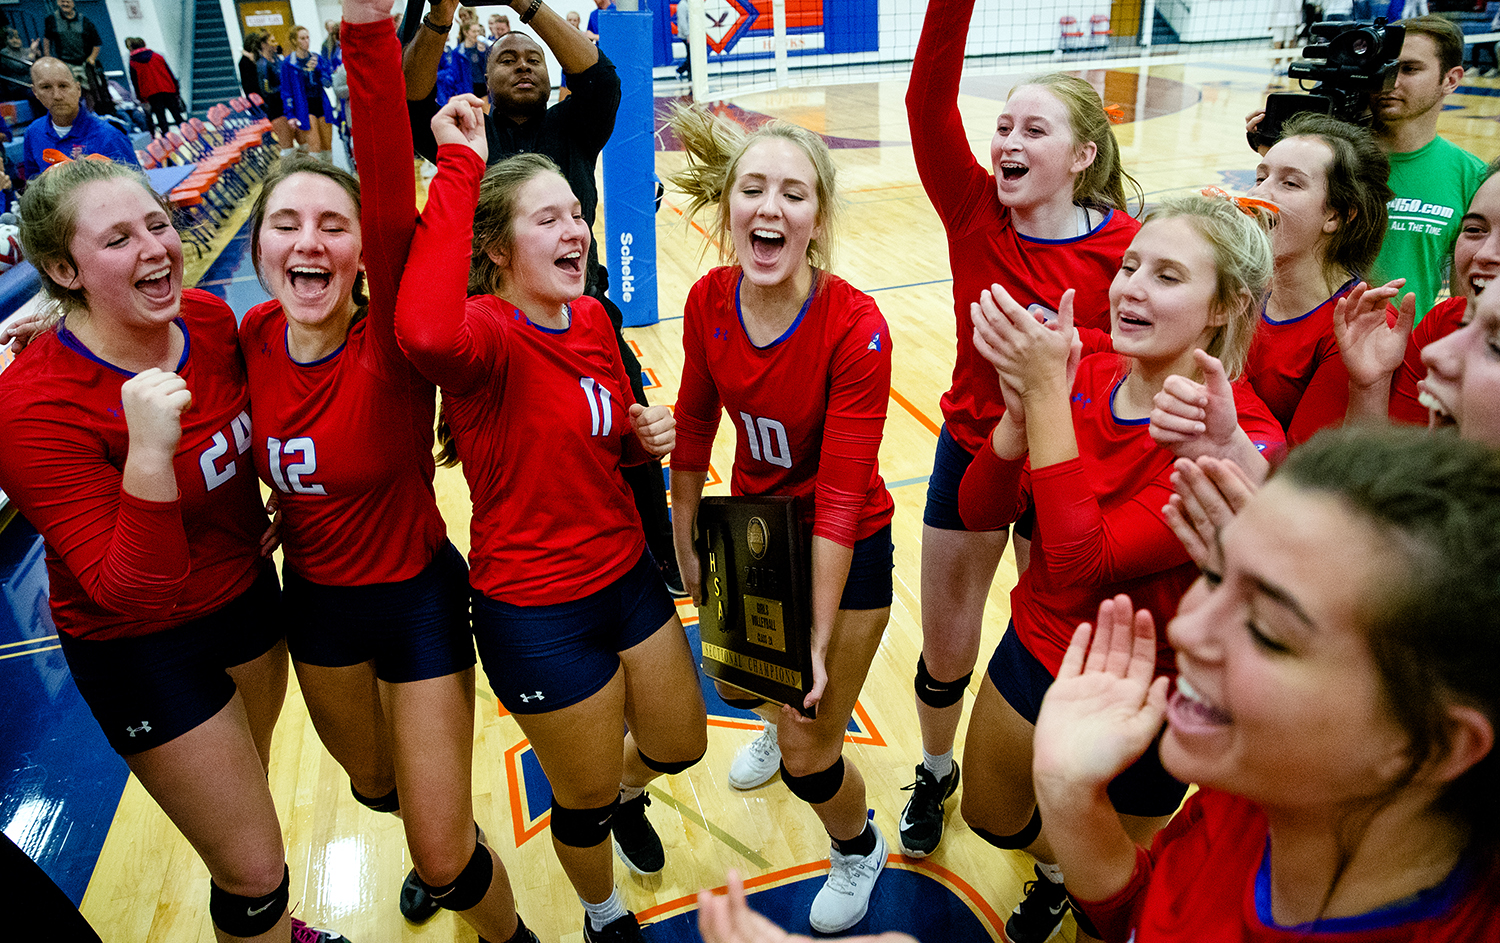 The Pleasant Plains Cardinals celebrate with their sectional championship plaque after defeating Maroa-Forsyth in two games during the IHSA Class 2A Riverton Sectional title game at Riverton High School Wednesday, October 31, 2018. [Ted Schurter/The State Journal-Register]